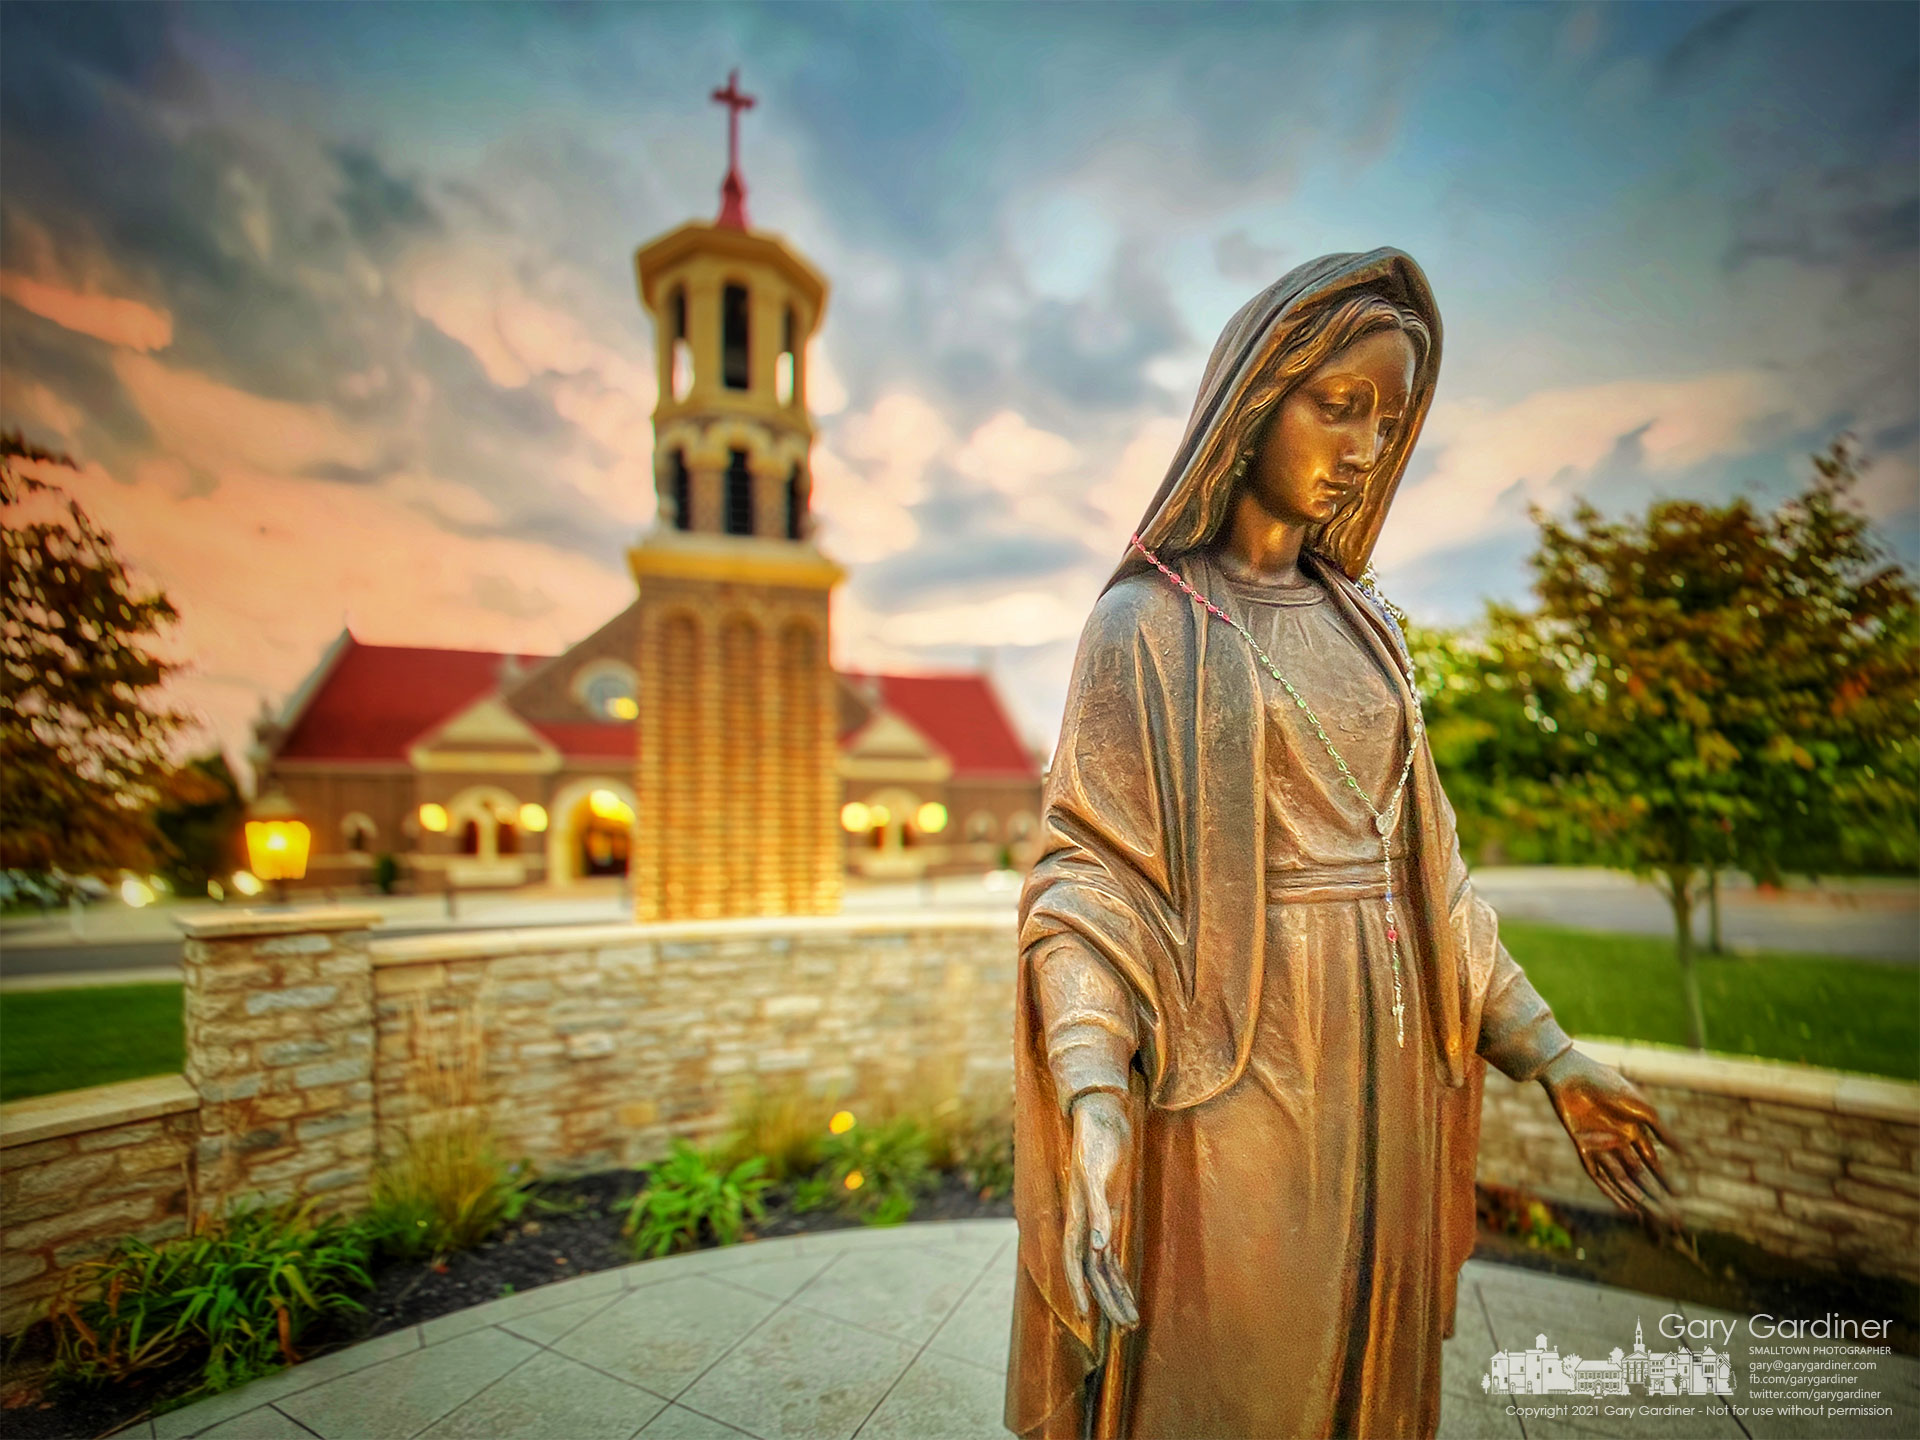 The statue of Mary near the entrance to St. Paul the Apostle Catholic Church is bathed in morning light at sunrise before the first Sunday Mass. My Final Photo for Oct. 10, 2021.